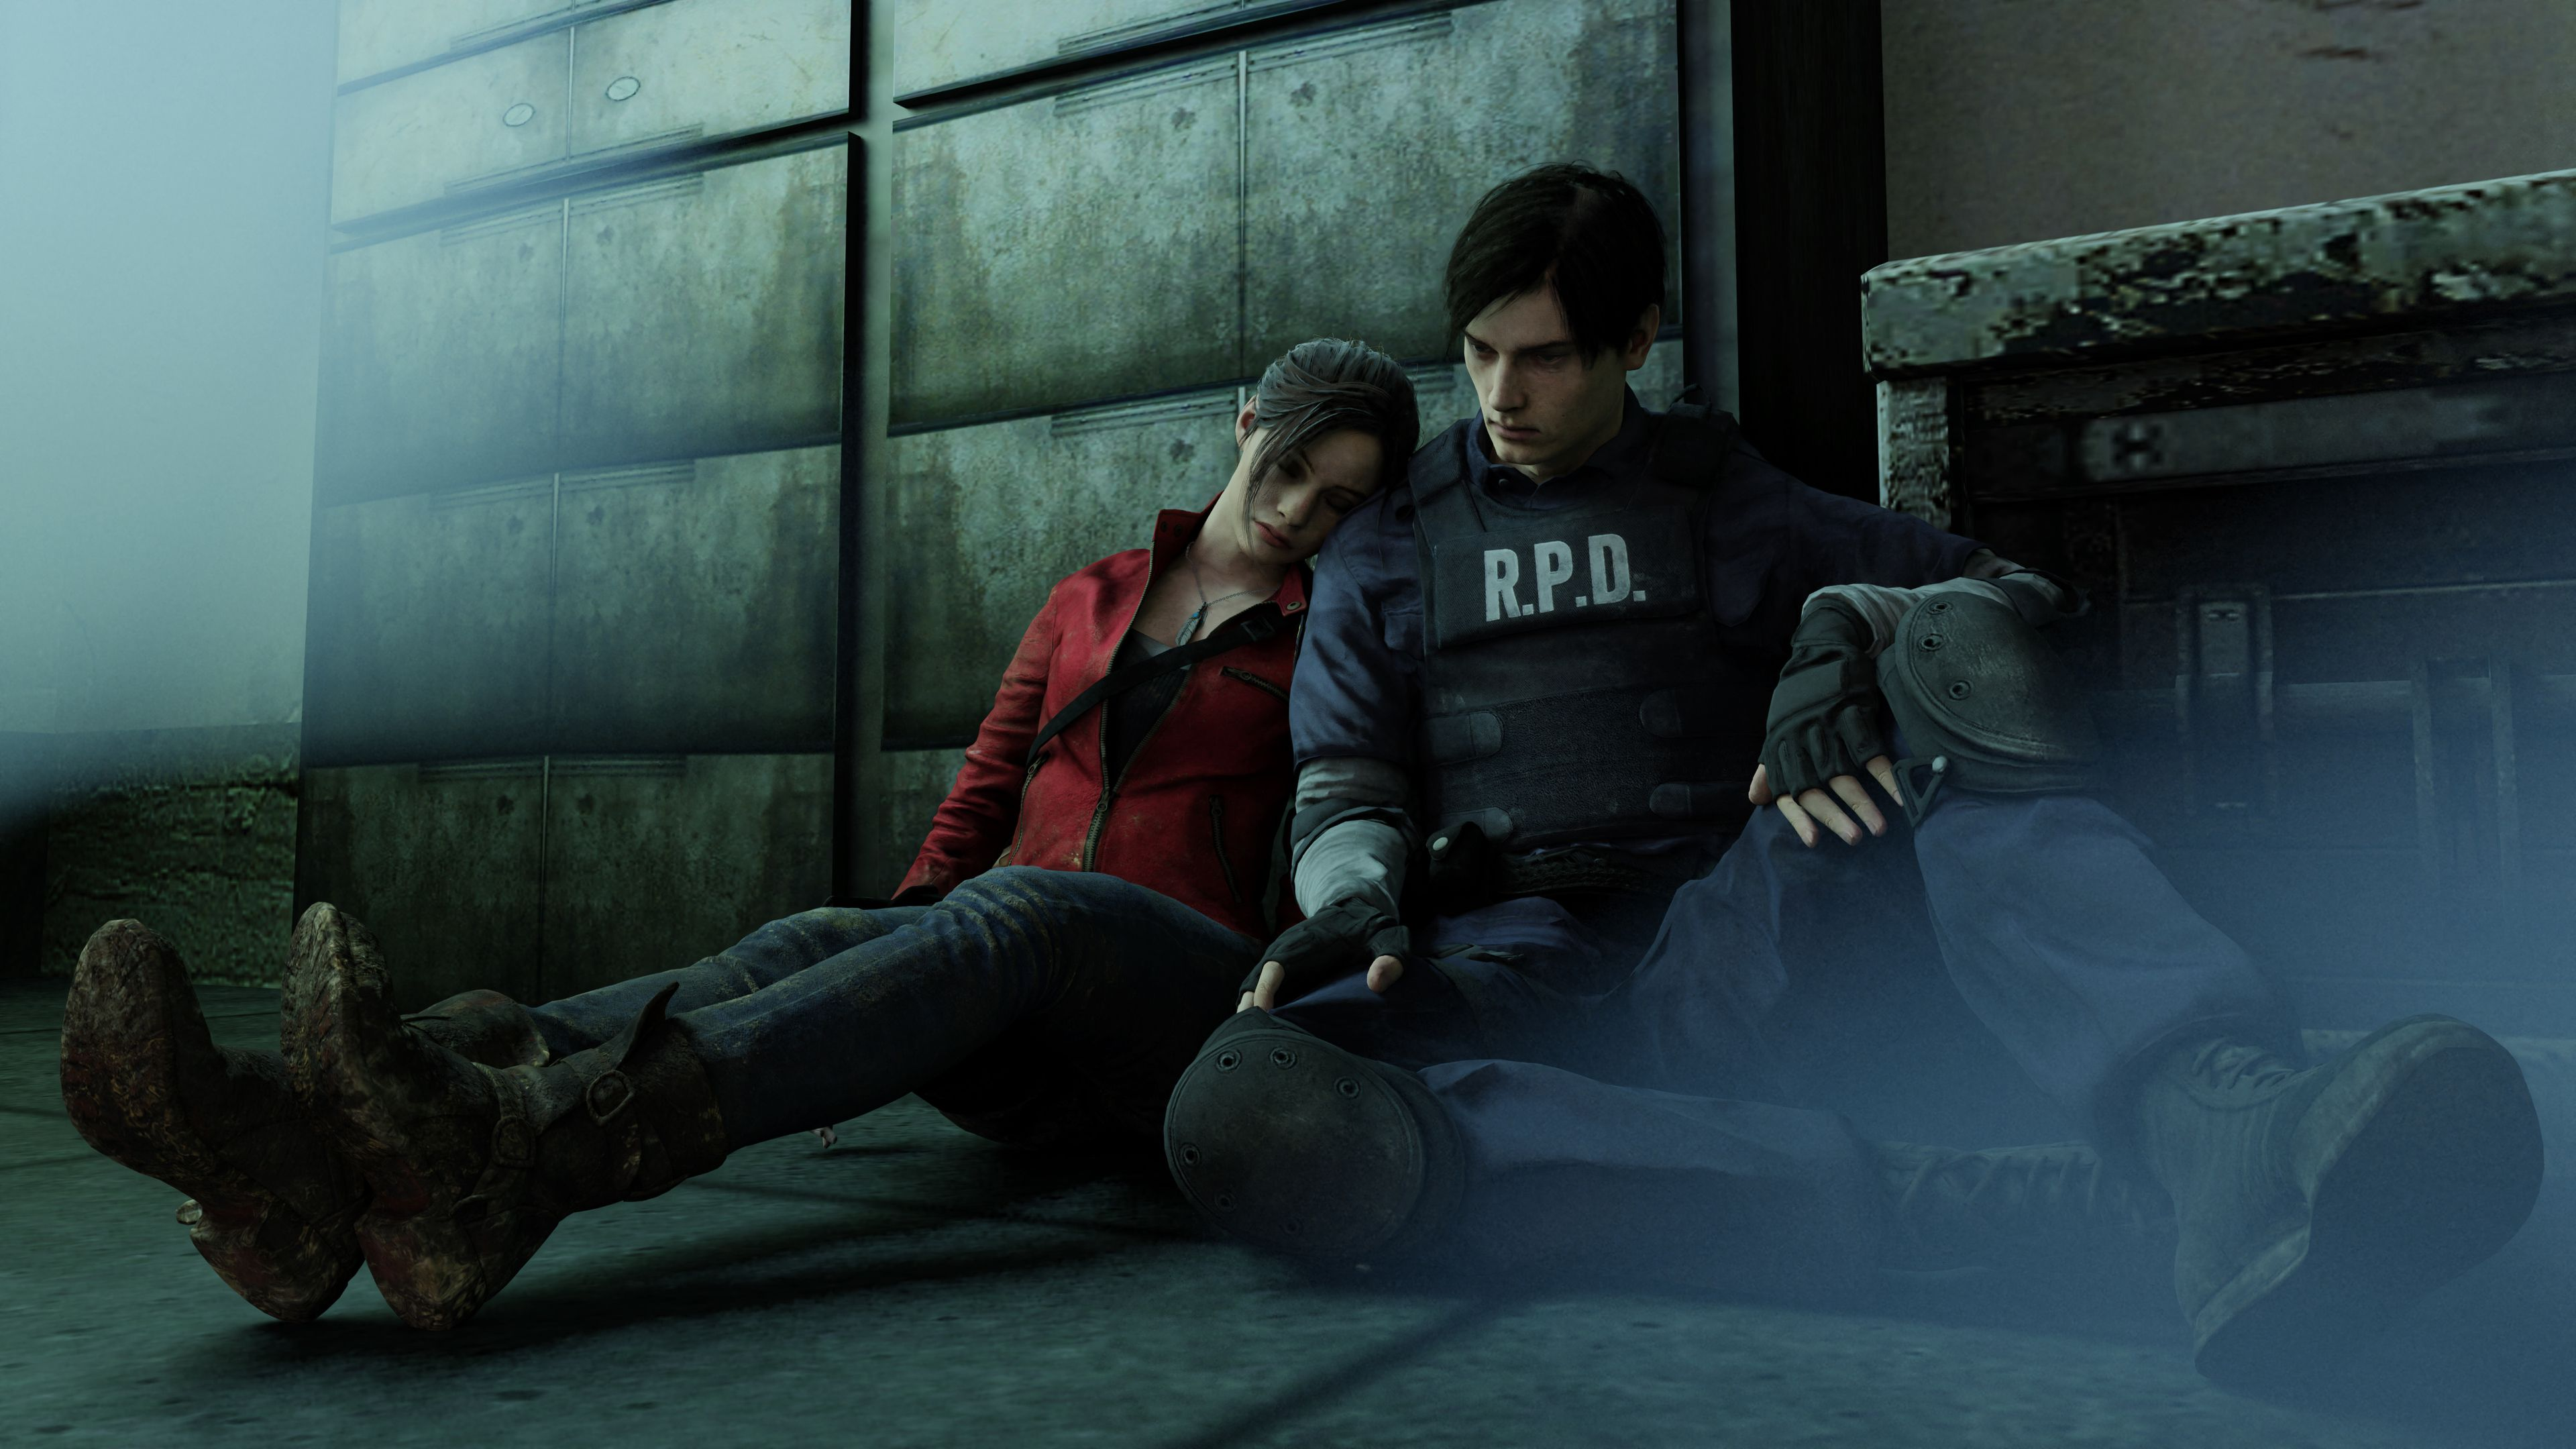 Resident Evil 2 4k Resident Evil 2 Wallpapers Hd Wallpapers Games Wallpapers 4k Wallpapers Resident Evil Anime Resident Evil Leon Resident Evil Video Game